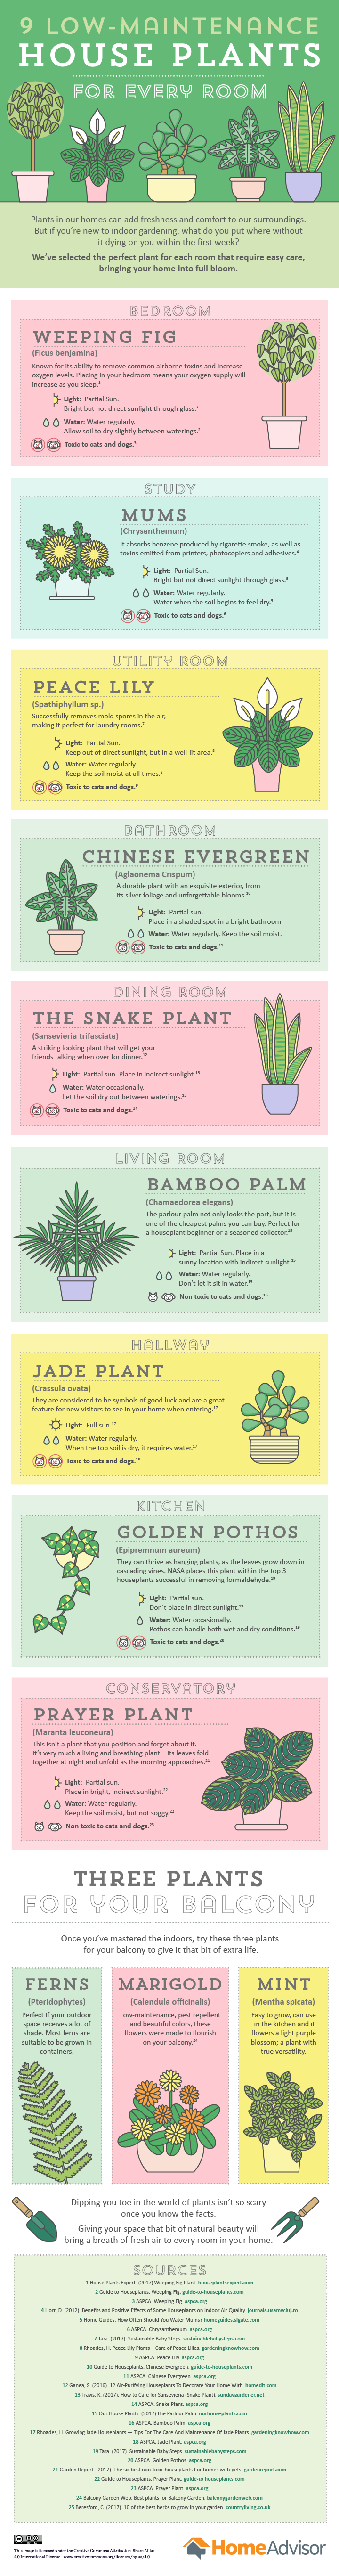 9 Low Maintenance House Plants For Every Room